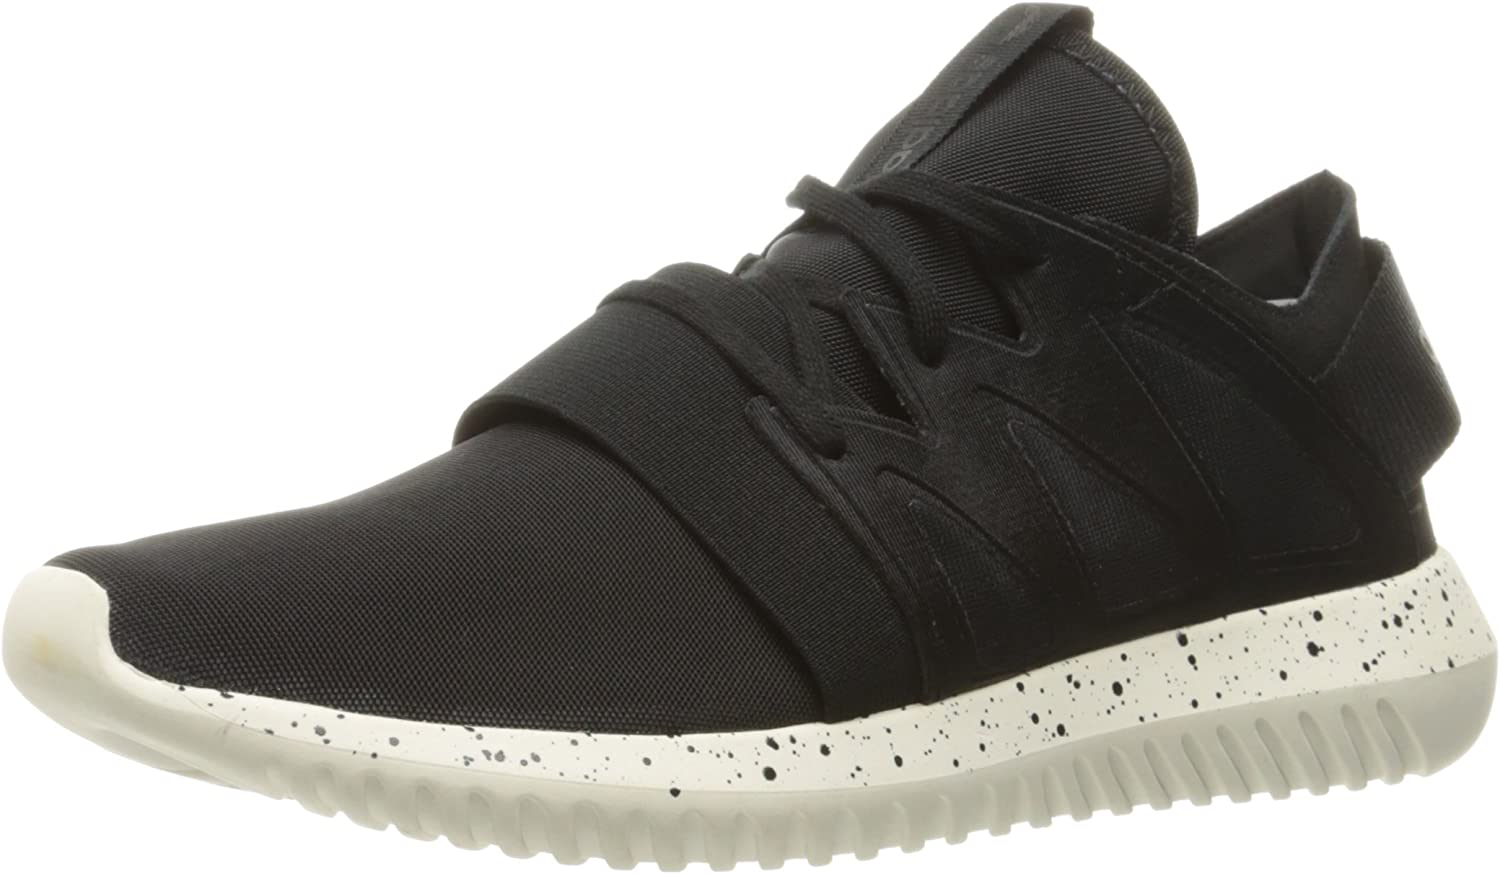 adidas Women's Tubular Viral Sneaker Sales Special price for a limited time of SALE items from new works Fashion W